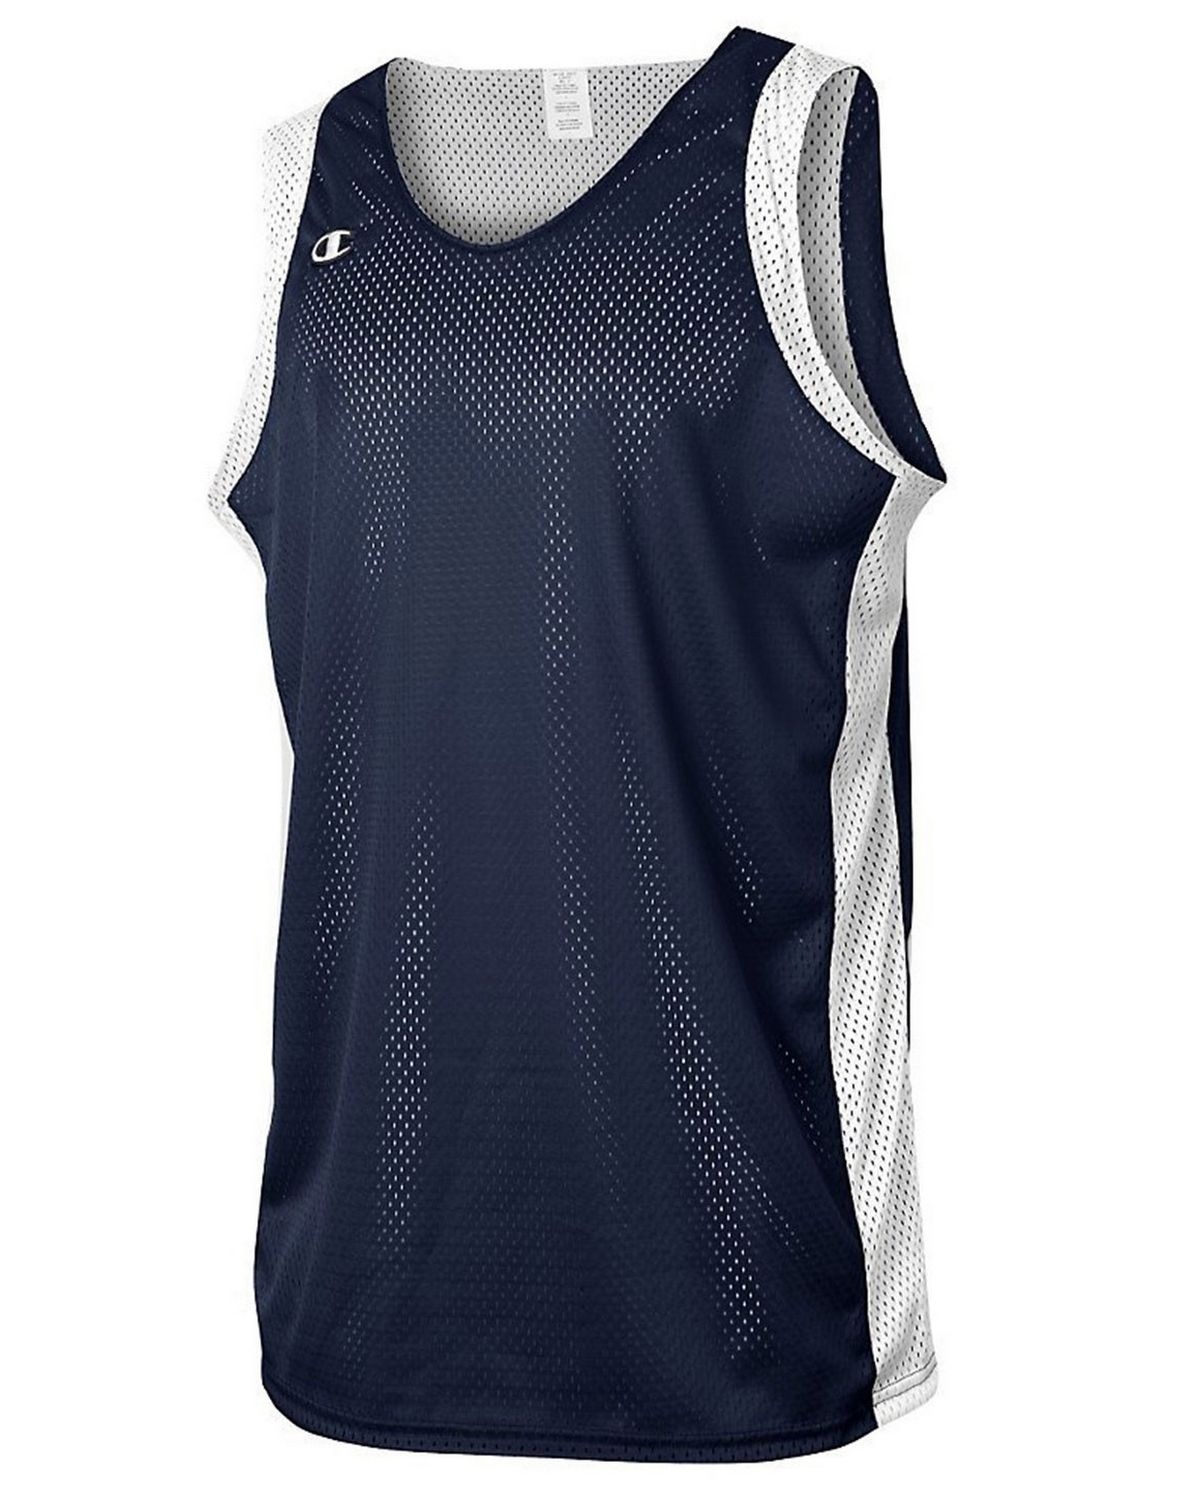 Champion B002 Mens Reversible Jersey - Navy/White - YXL B002